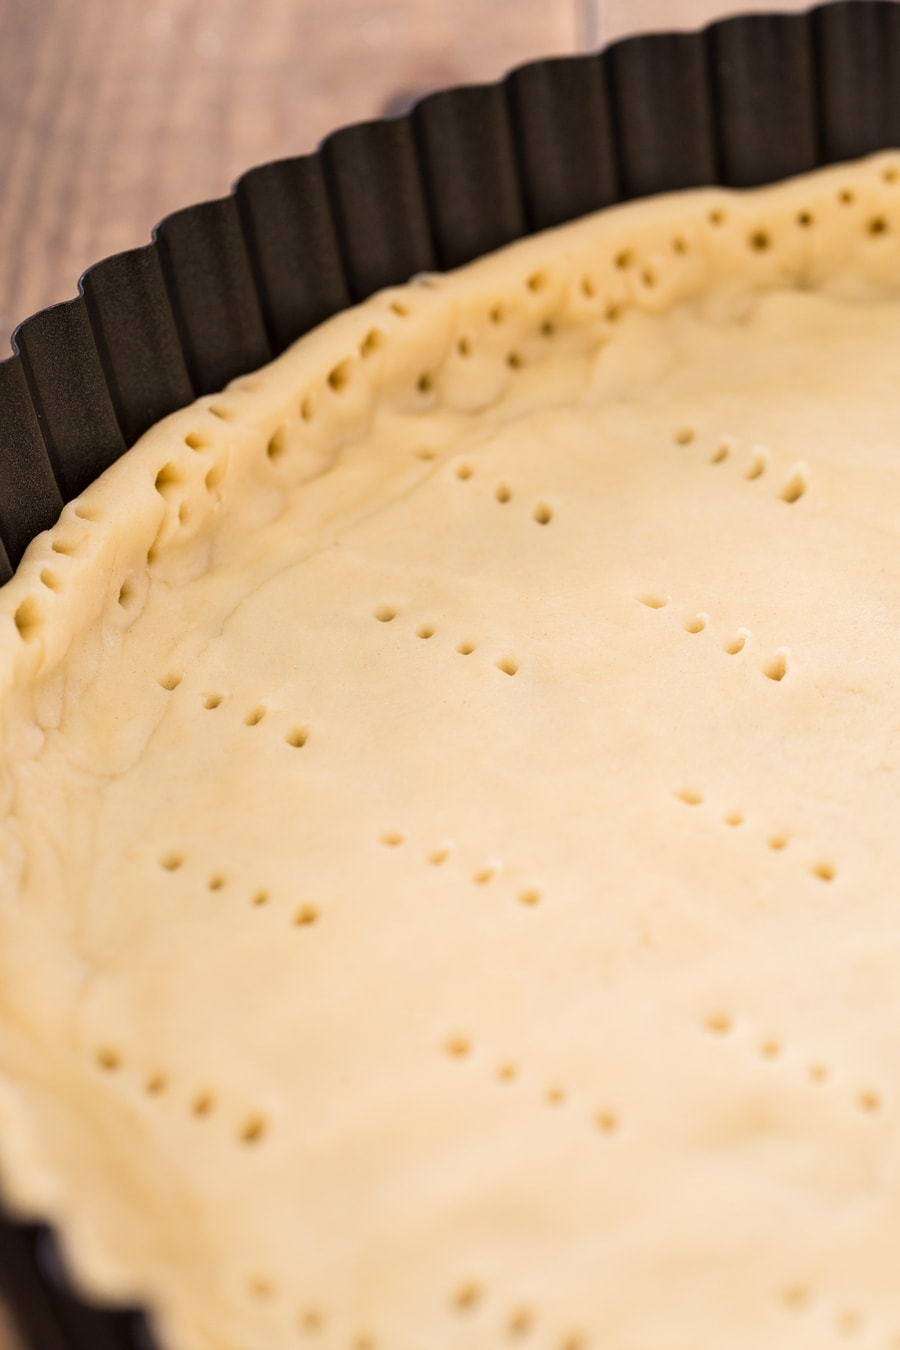 Shortcrust pastry that has been pricked with a fork.